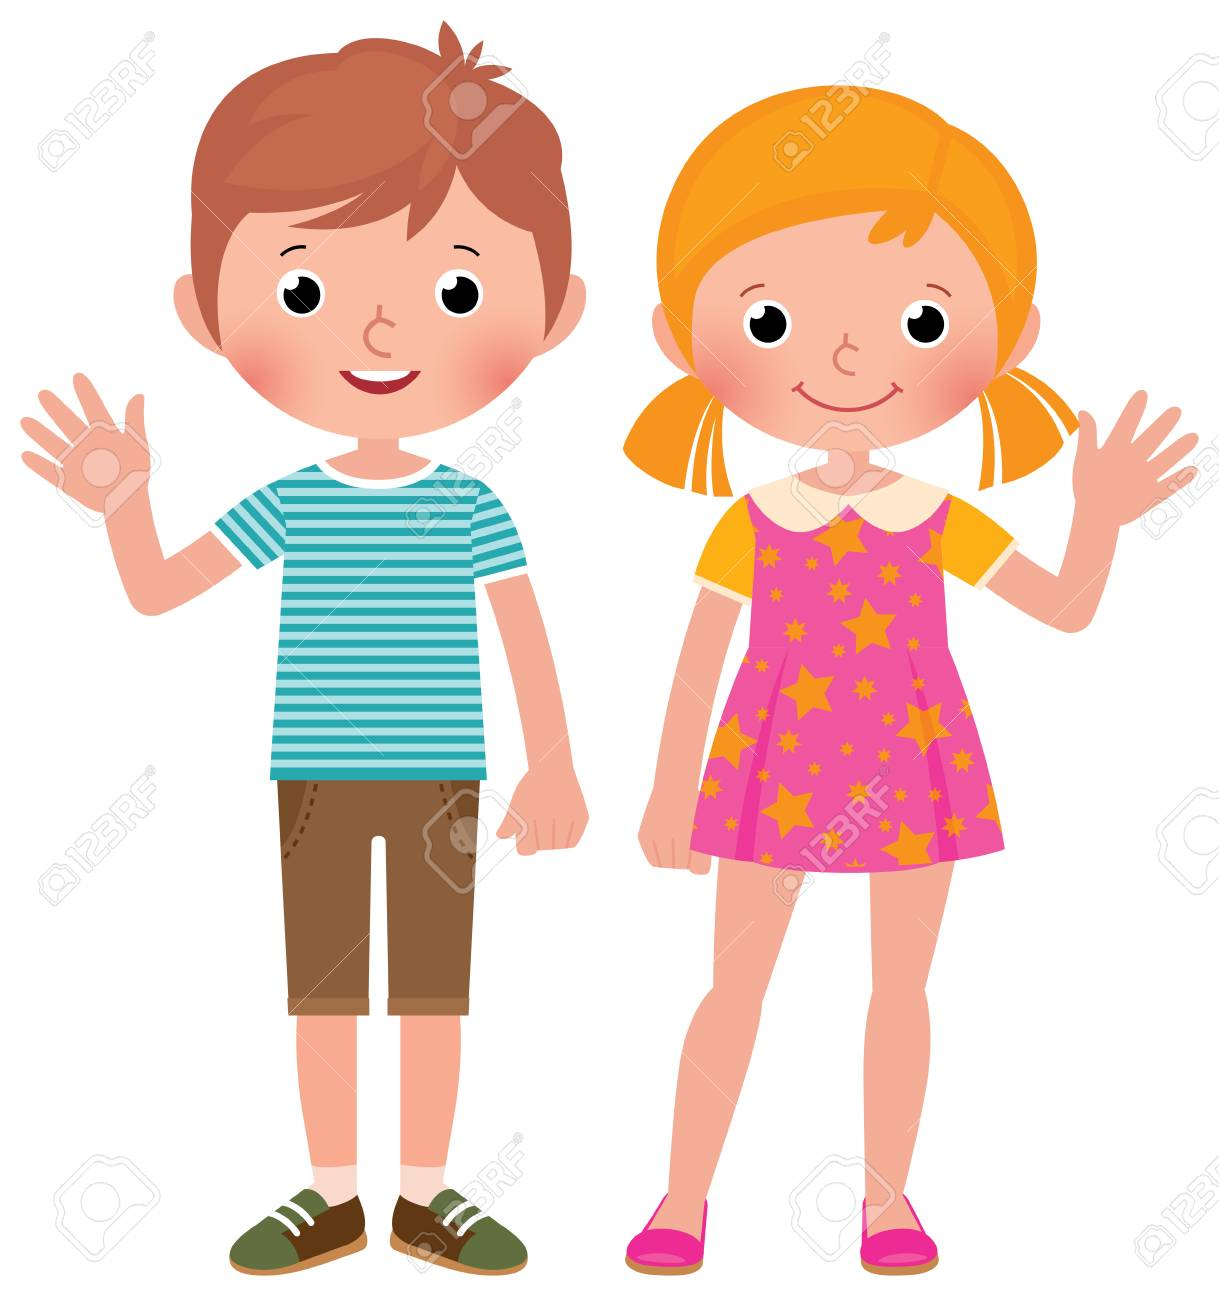 Boy and girl in full length welcome vector cartoon illustration - 98045404